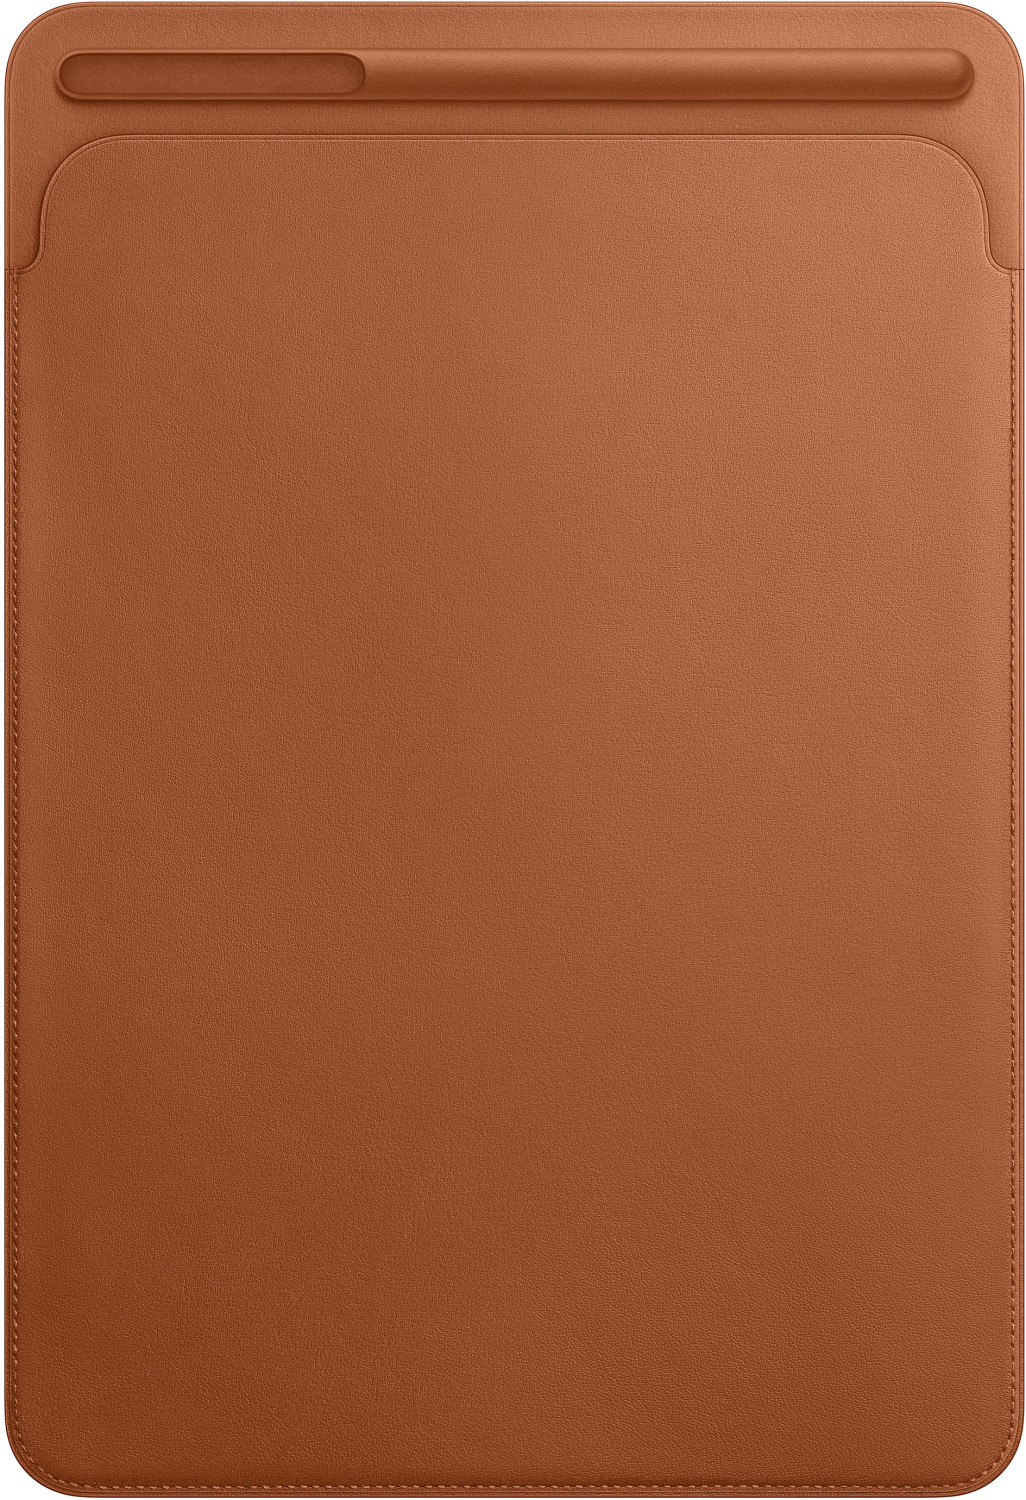 """Genuine Official Apple iPad Pro 10.5"""" Brown Leather Tablet Sleeve Case MPU12ZM/A"""